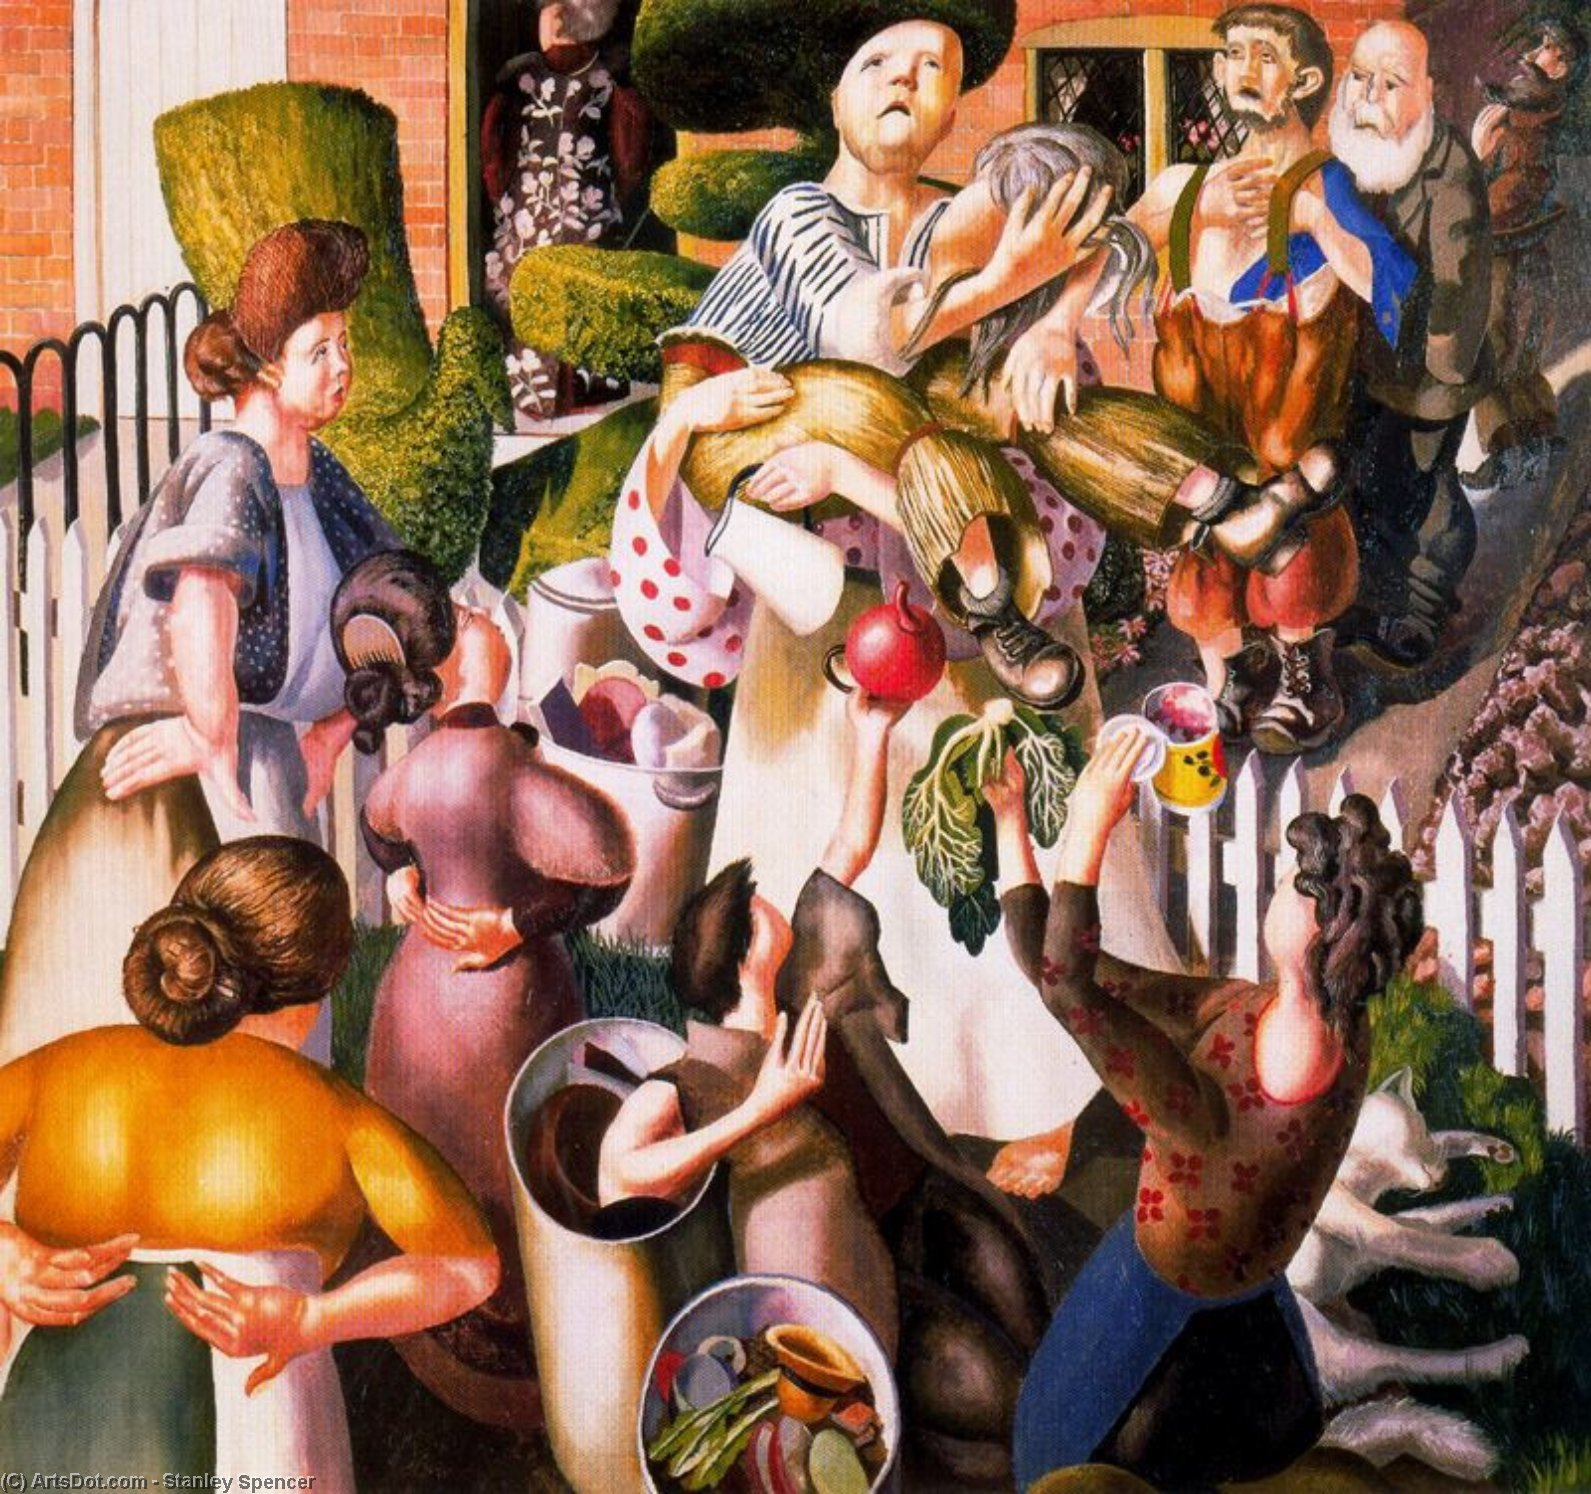 The Dustman or the lovers by Stanley Spencer (1891-1959, United Kingdom)